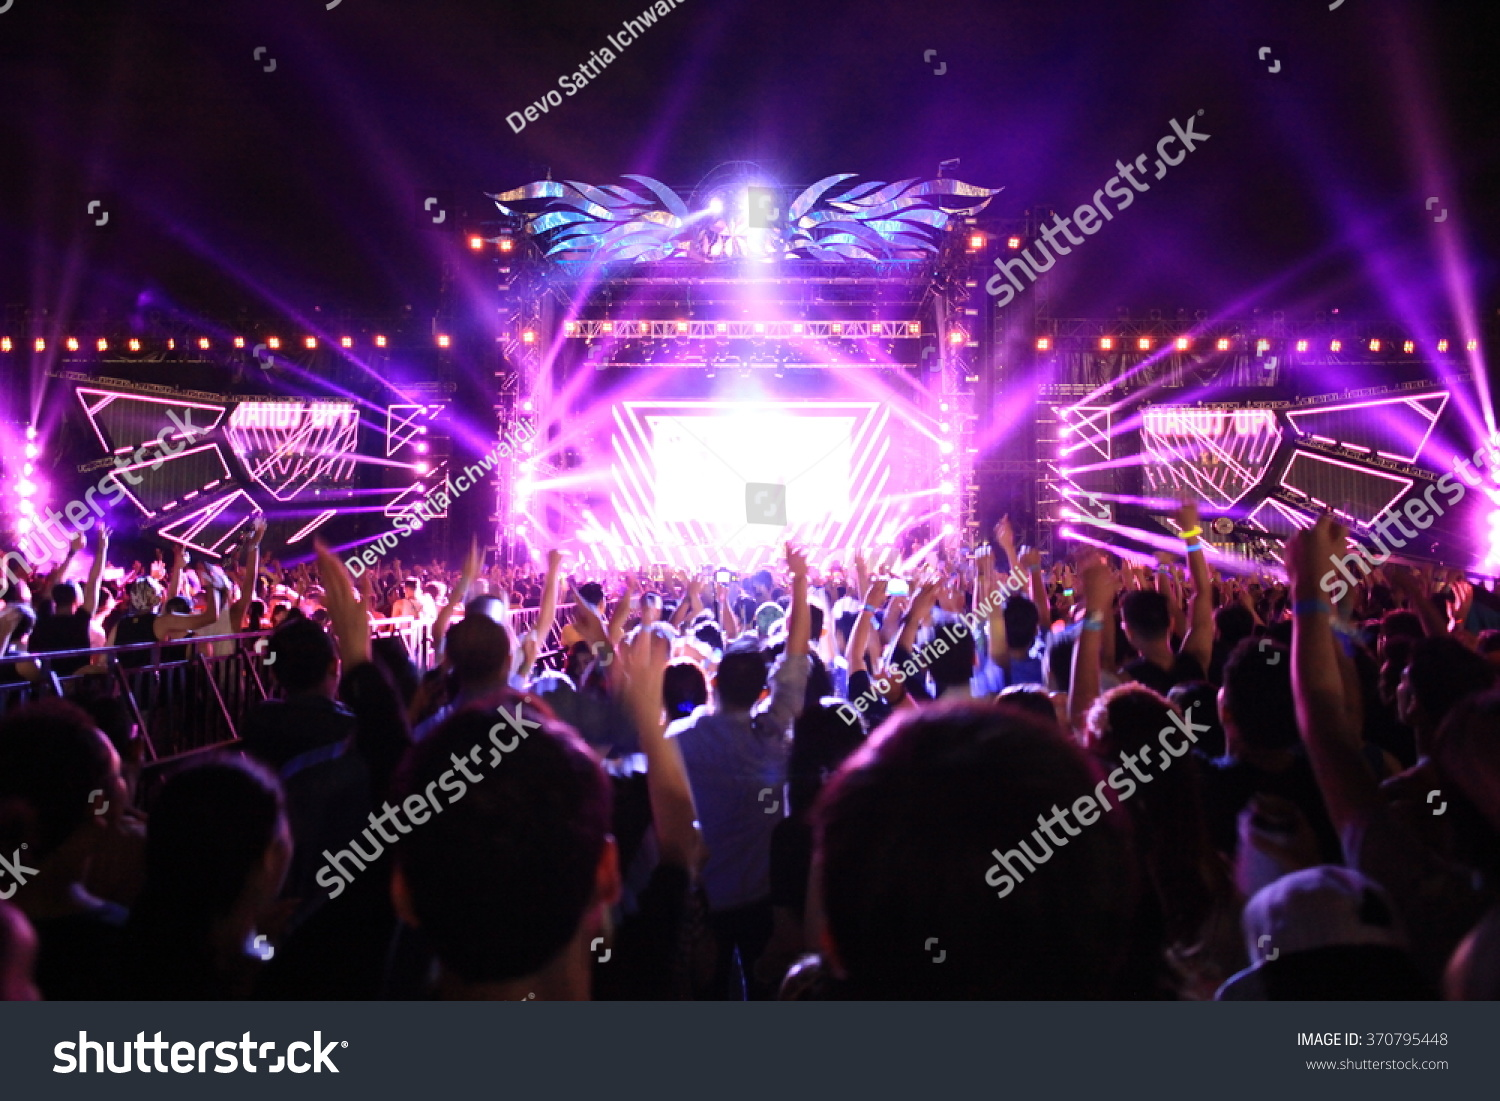 electronic dance music festivals essay Upcoming edm concerts in michigan see your favorite artists live, and discover  new music  paper diamond elevation at the intersection - grand rapids,.